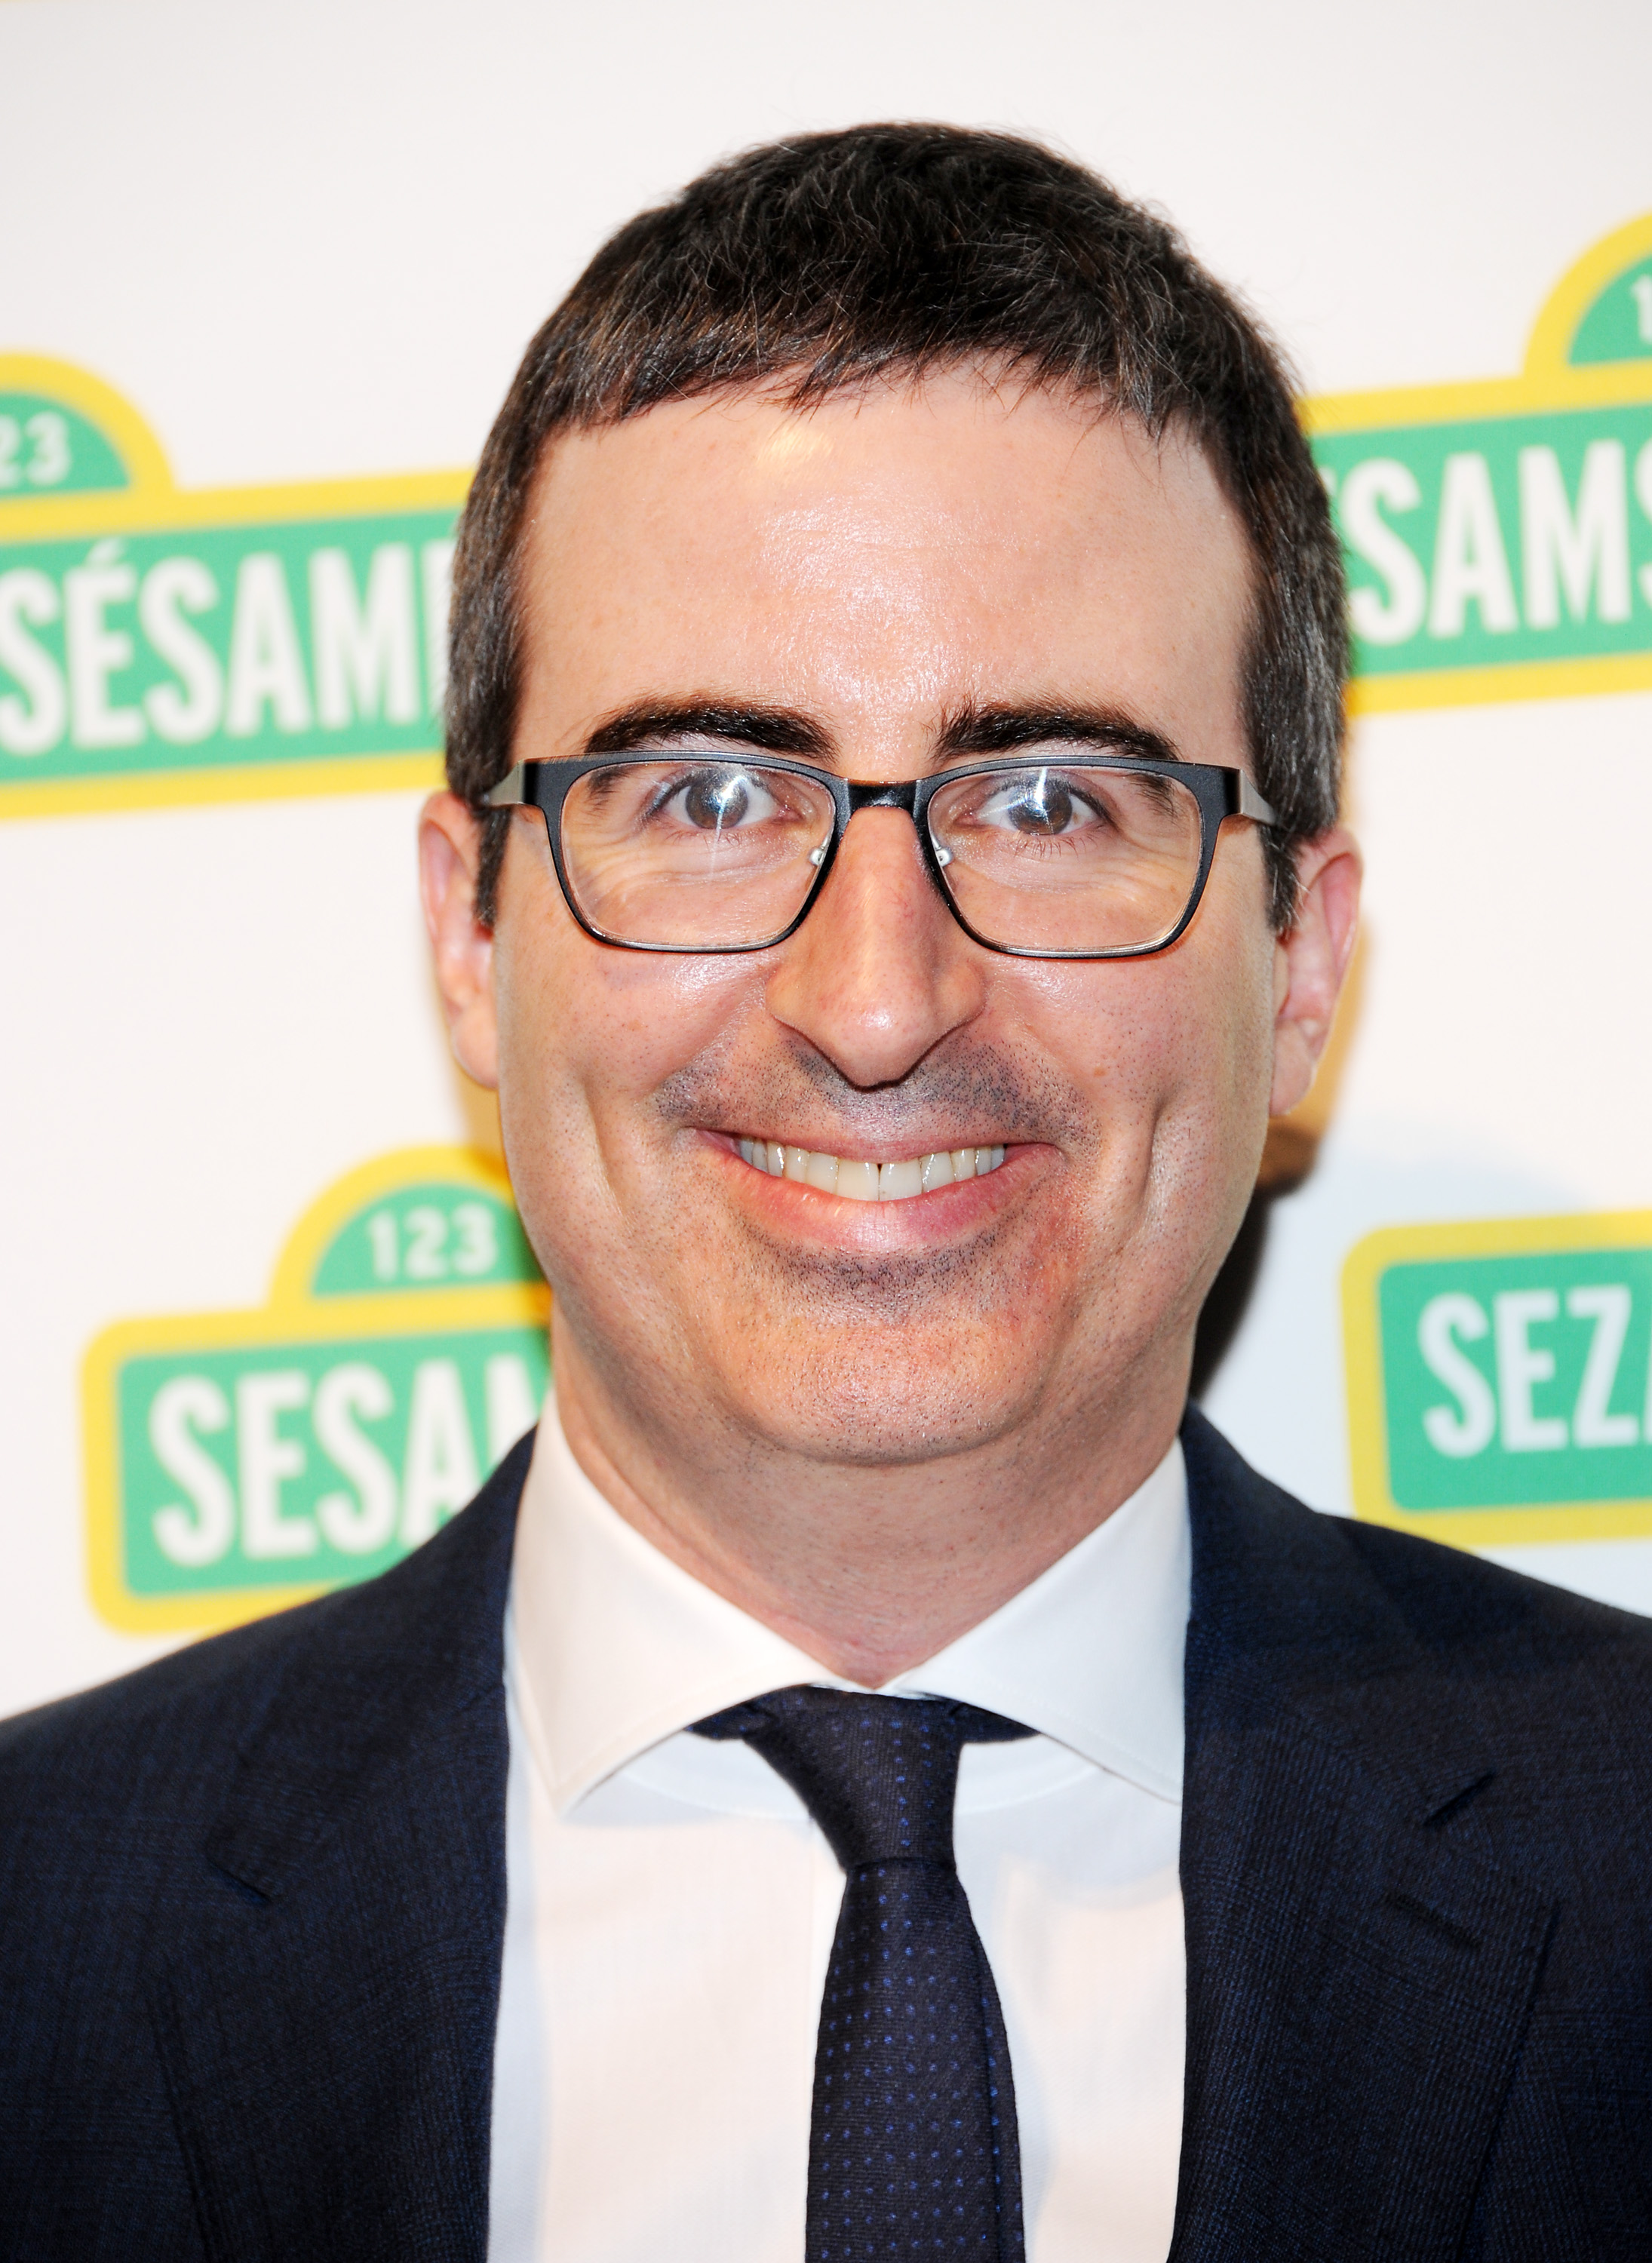 John Oliver attends the 14th Annual Sesame Workshop Gala at Cipriani 42nd Street on June 1, 2016 in New York City. Desiree Navarro—WireImage